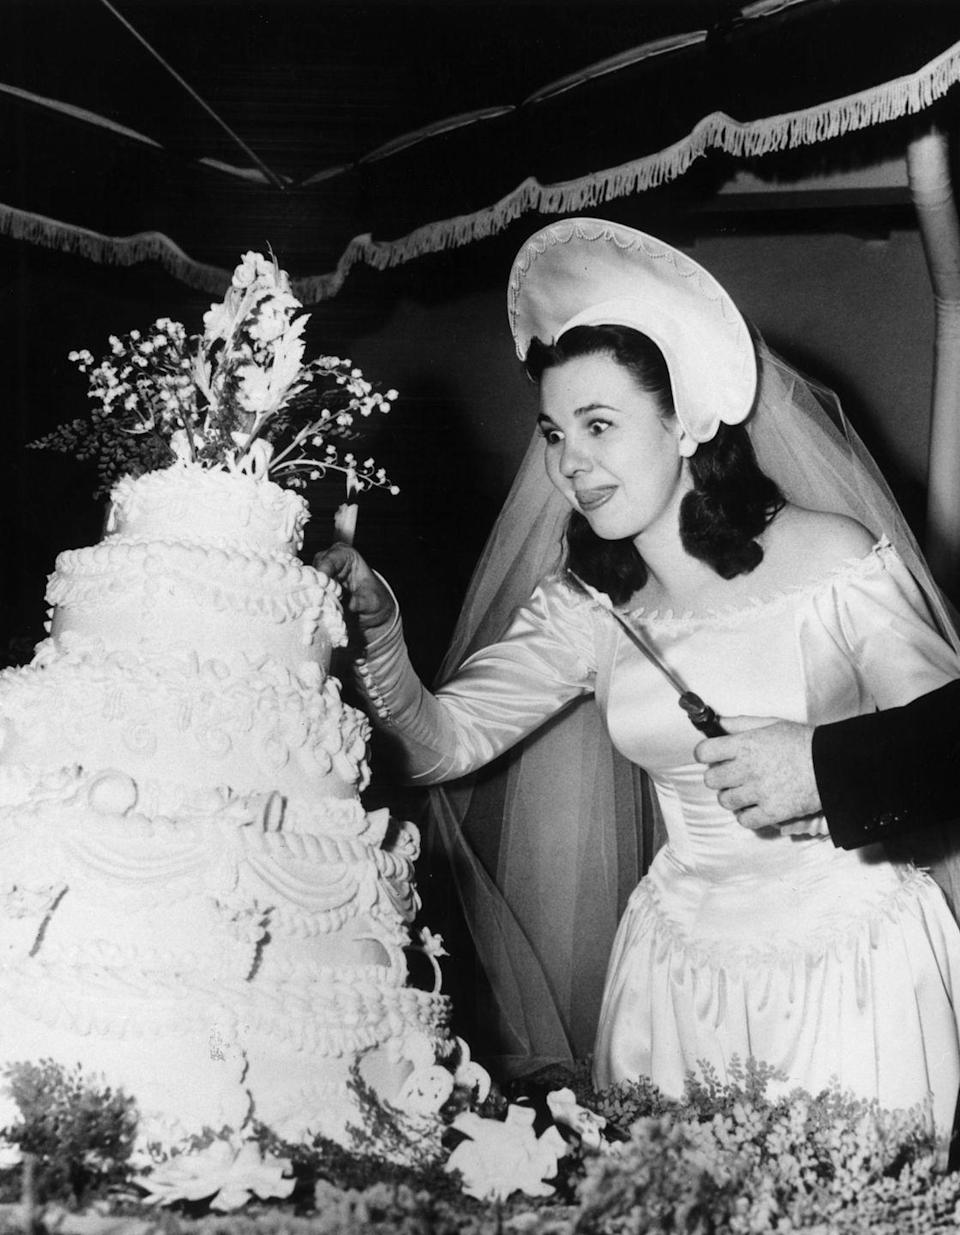 <p>This 1947 bride can't quite believe her eyes at the tiered cake in front of her. It was designed to feed 600 of her guests! (Our attention shifts to her very unusual hat, though.)</p>